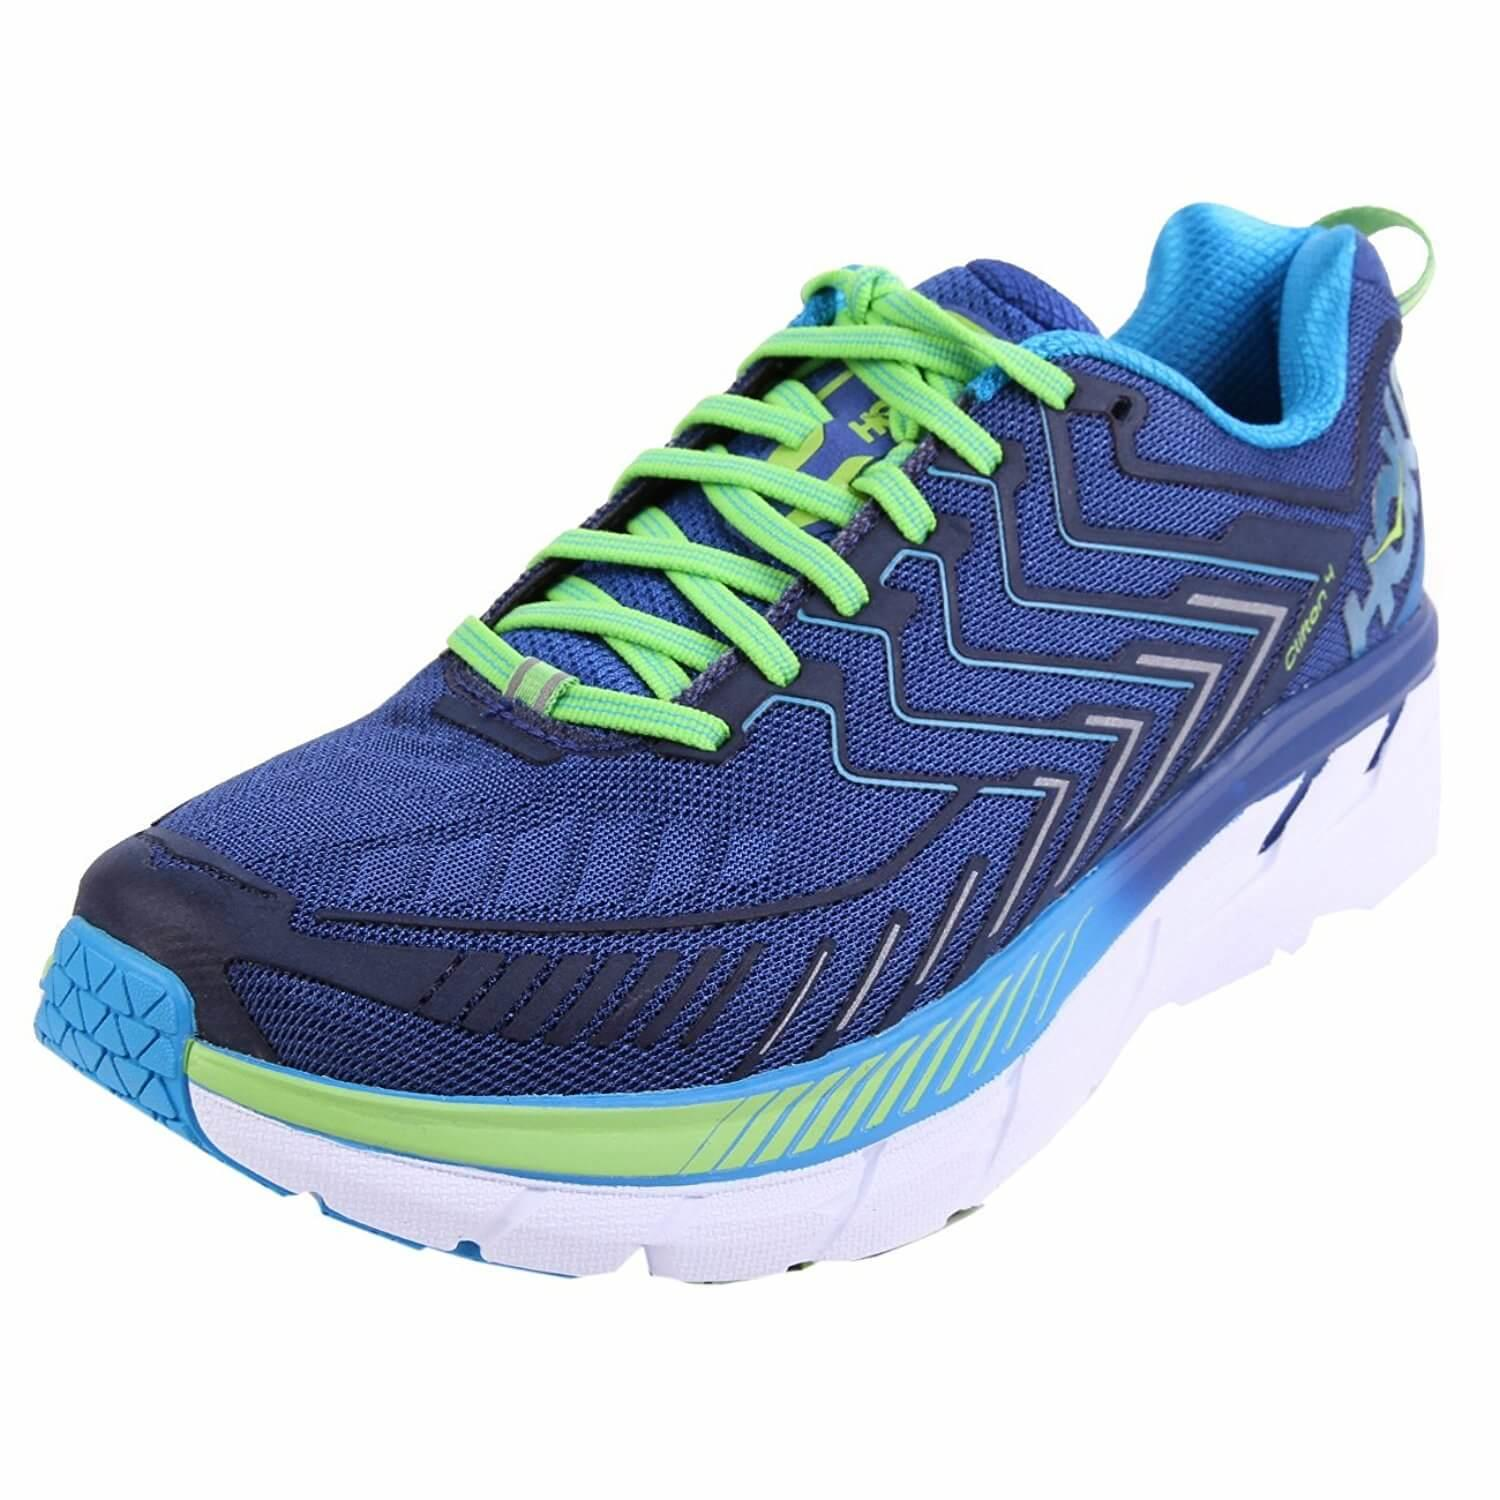 Best Lightweight Stability Running Shoes